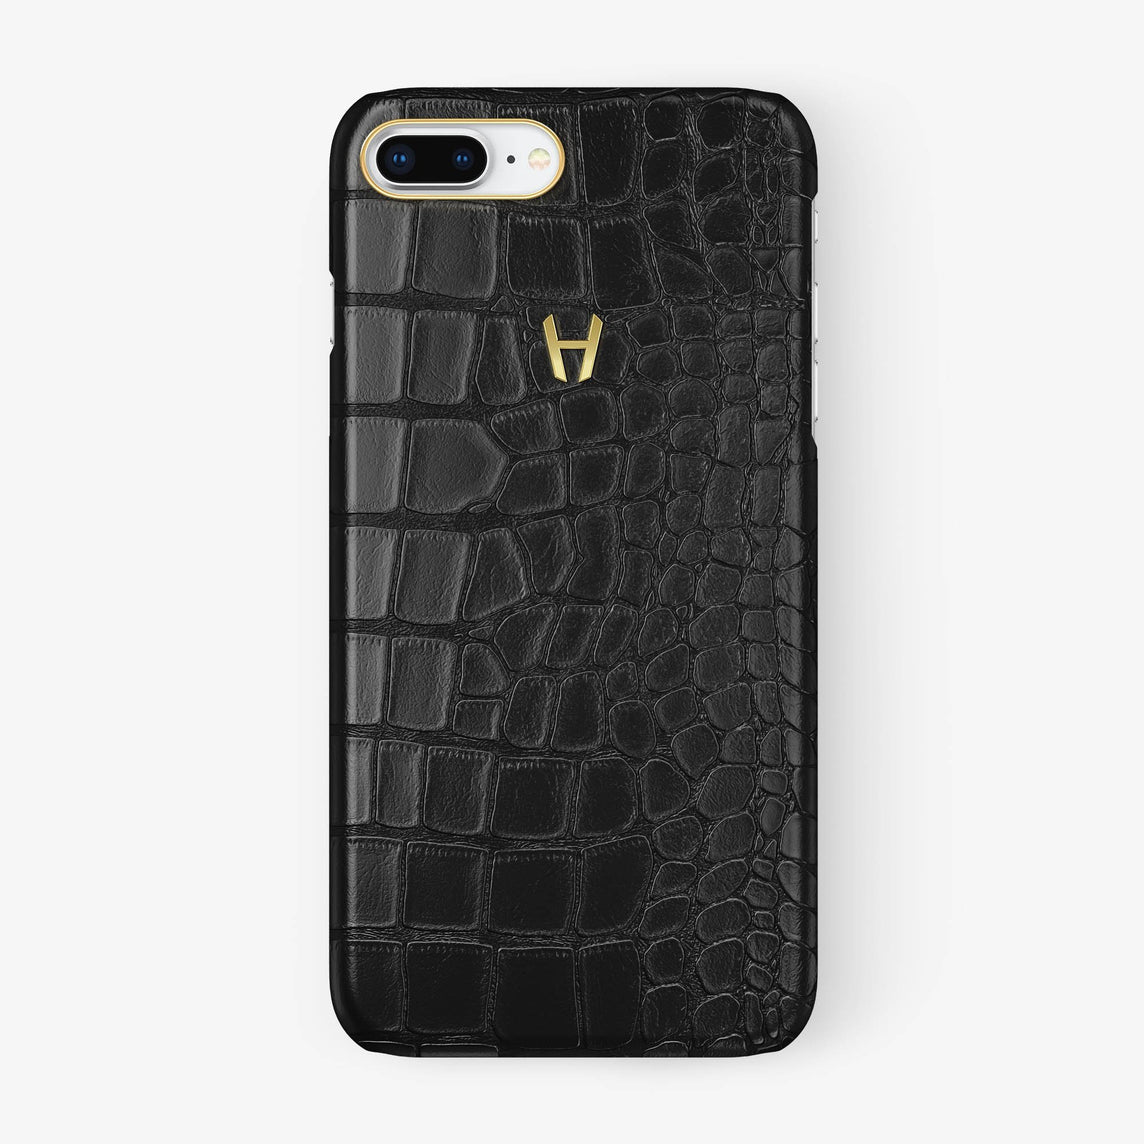 Alligator Case iPhone 7/8 Plus | Black - Yellow Gold - Hadoro